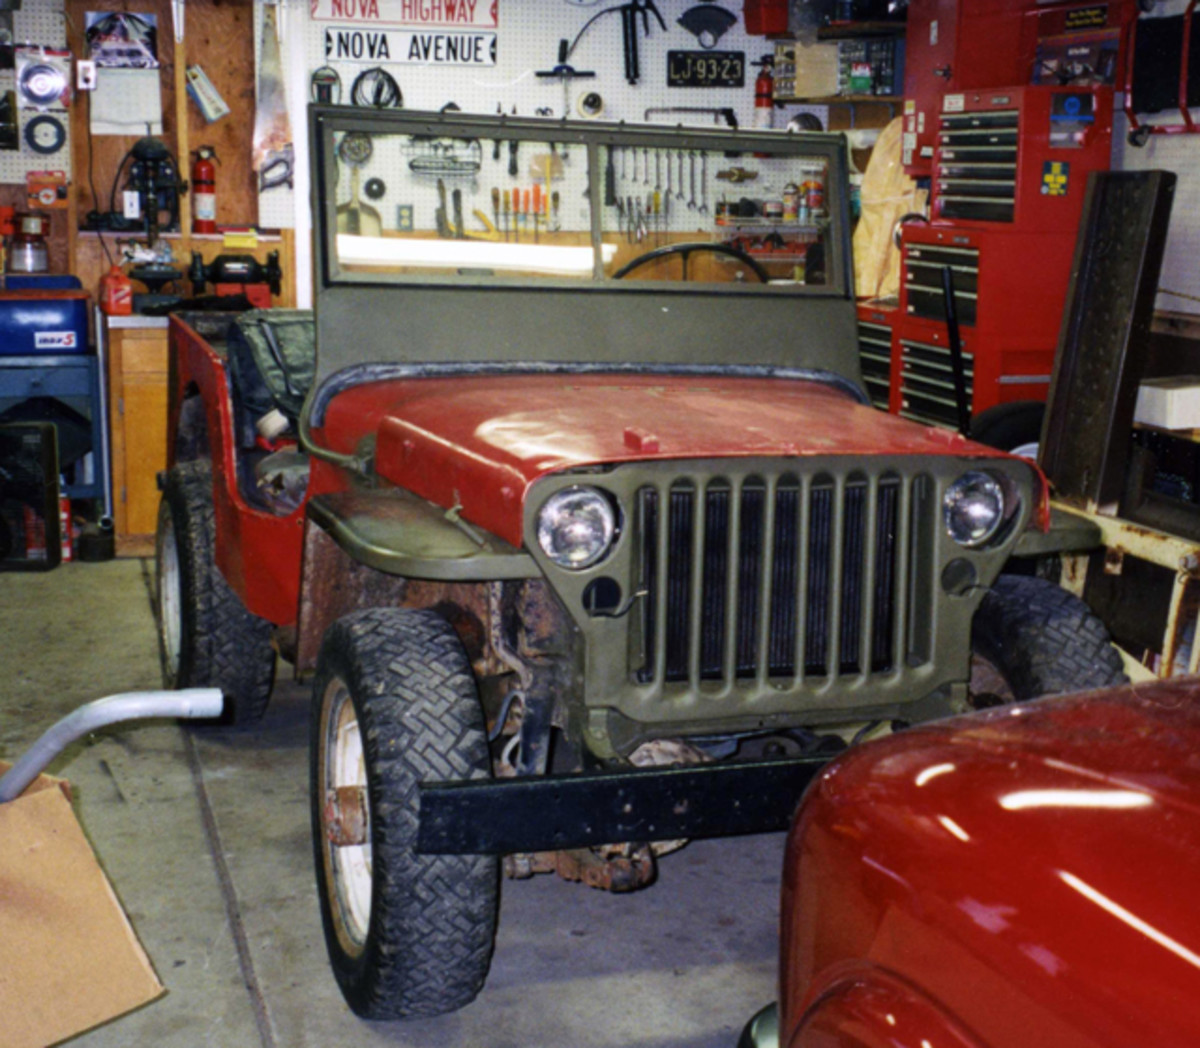 My first historic military vehicle, a 1942 GPW purchased off eBay for a song. It came with boxes of new parts, paint, and an extra CJ-2 driveline as a bonus—all good stuff for bartering.